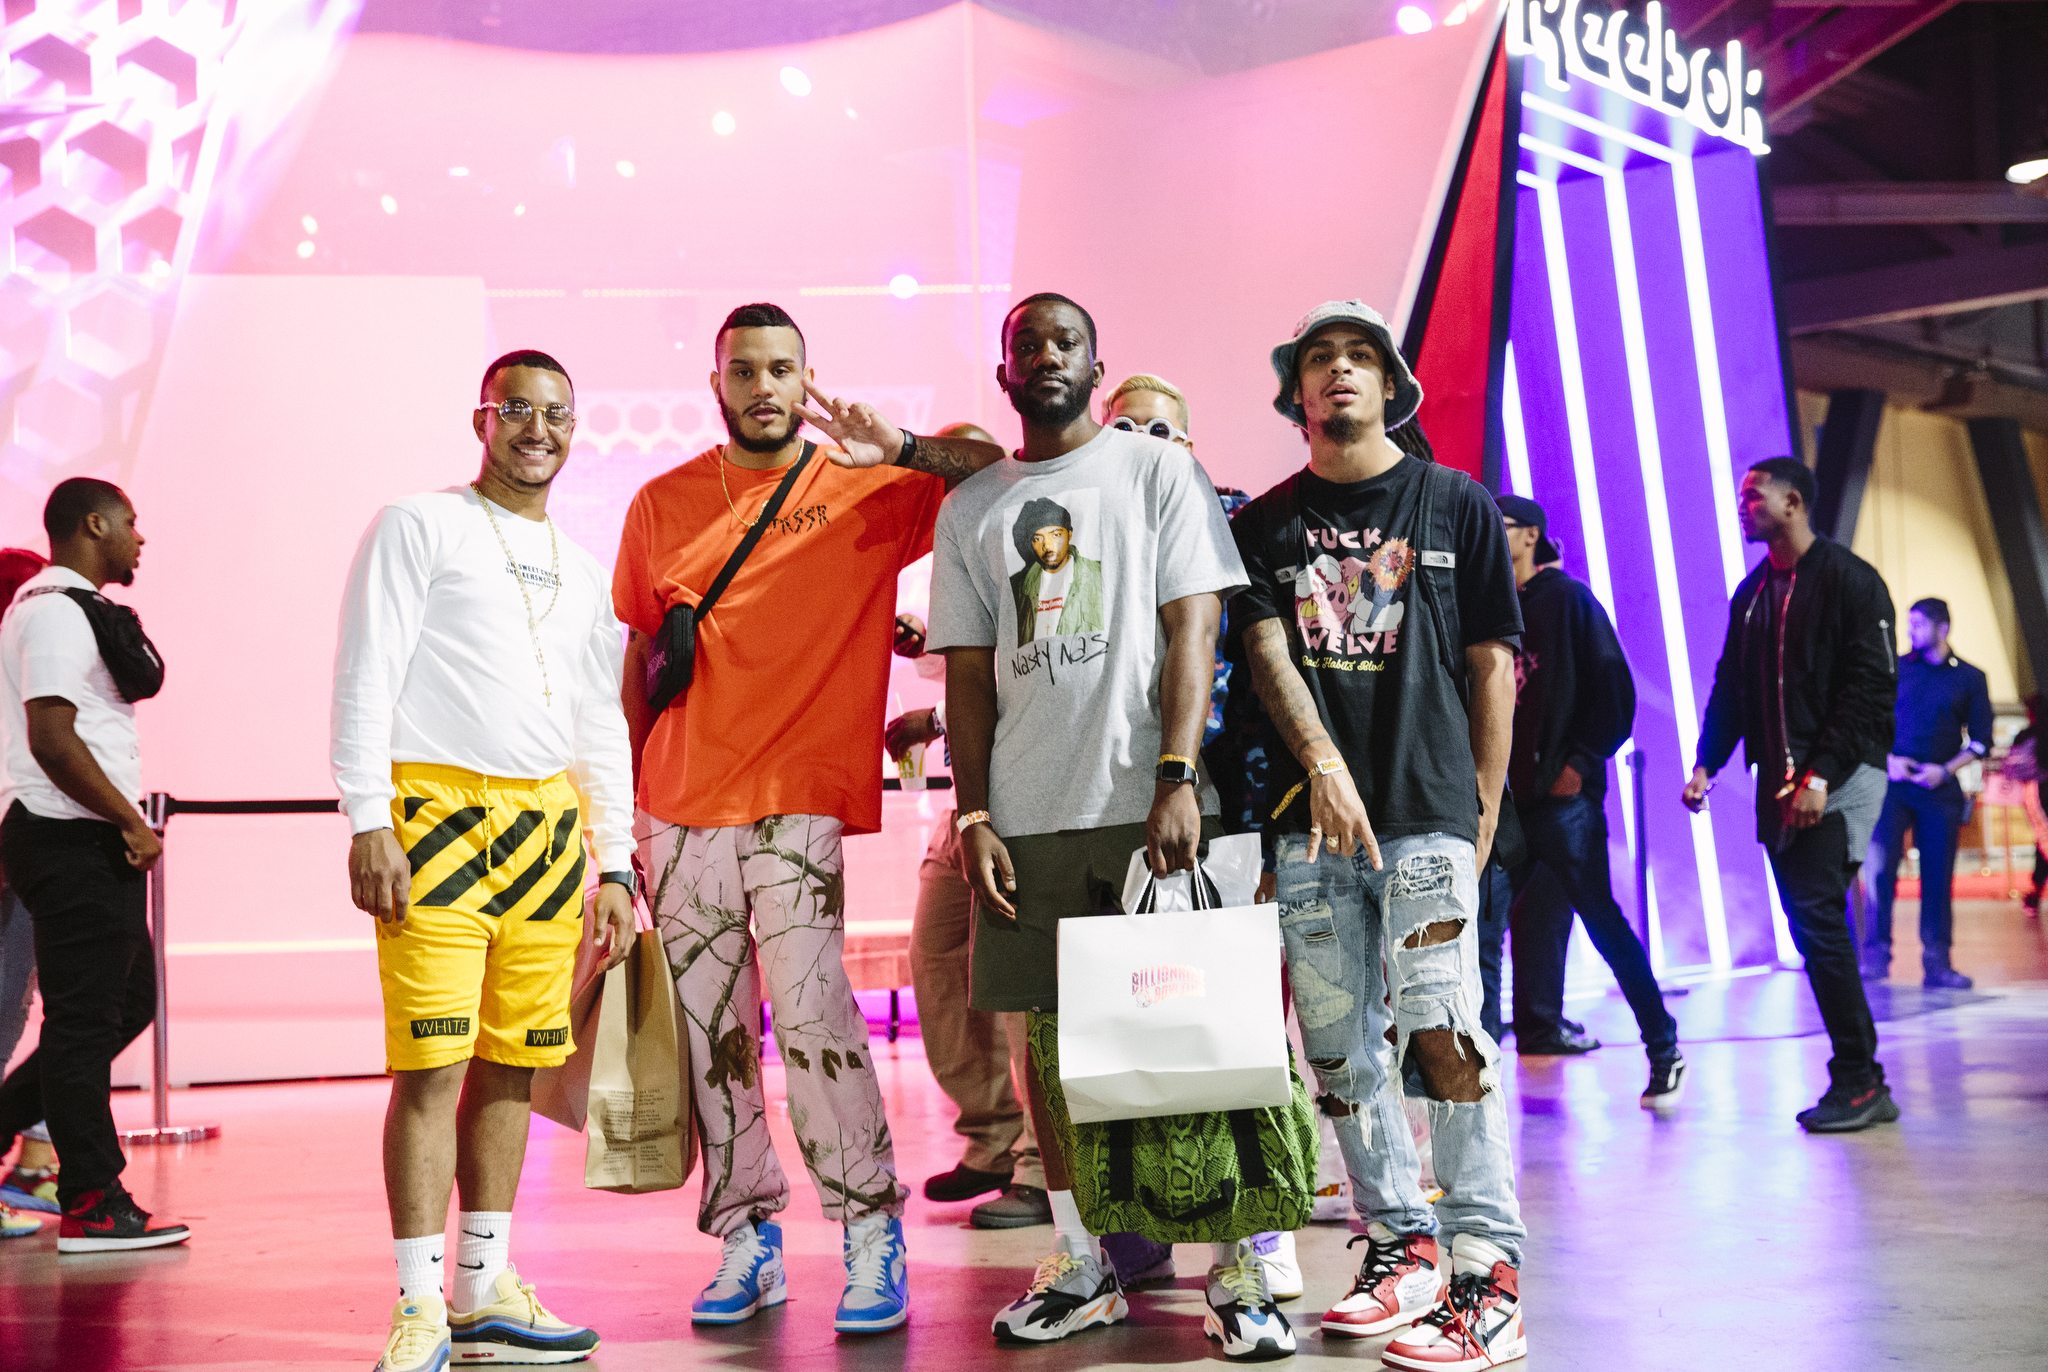 Street Style at ComplexCon 2018